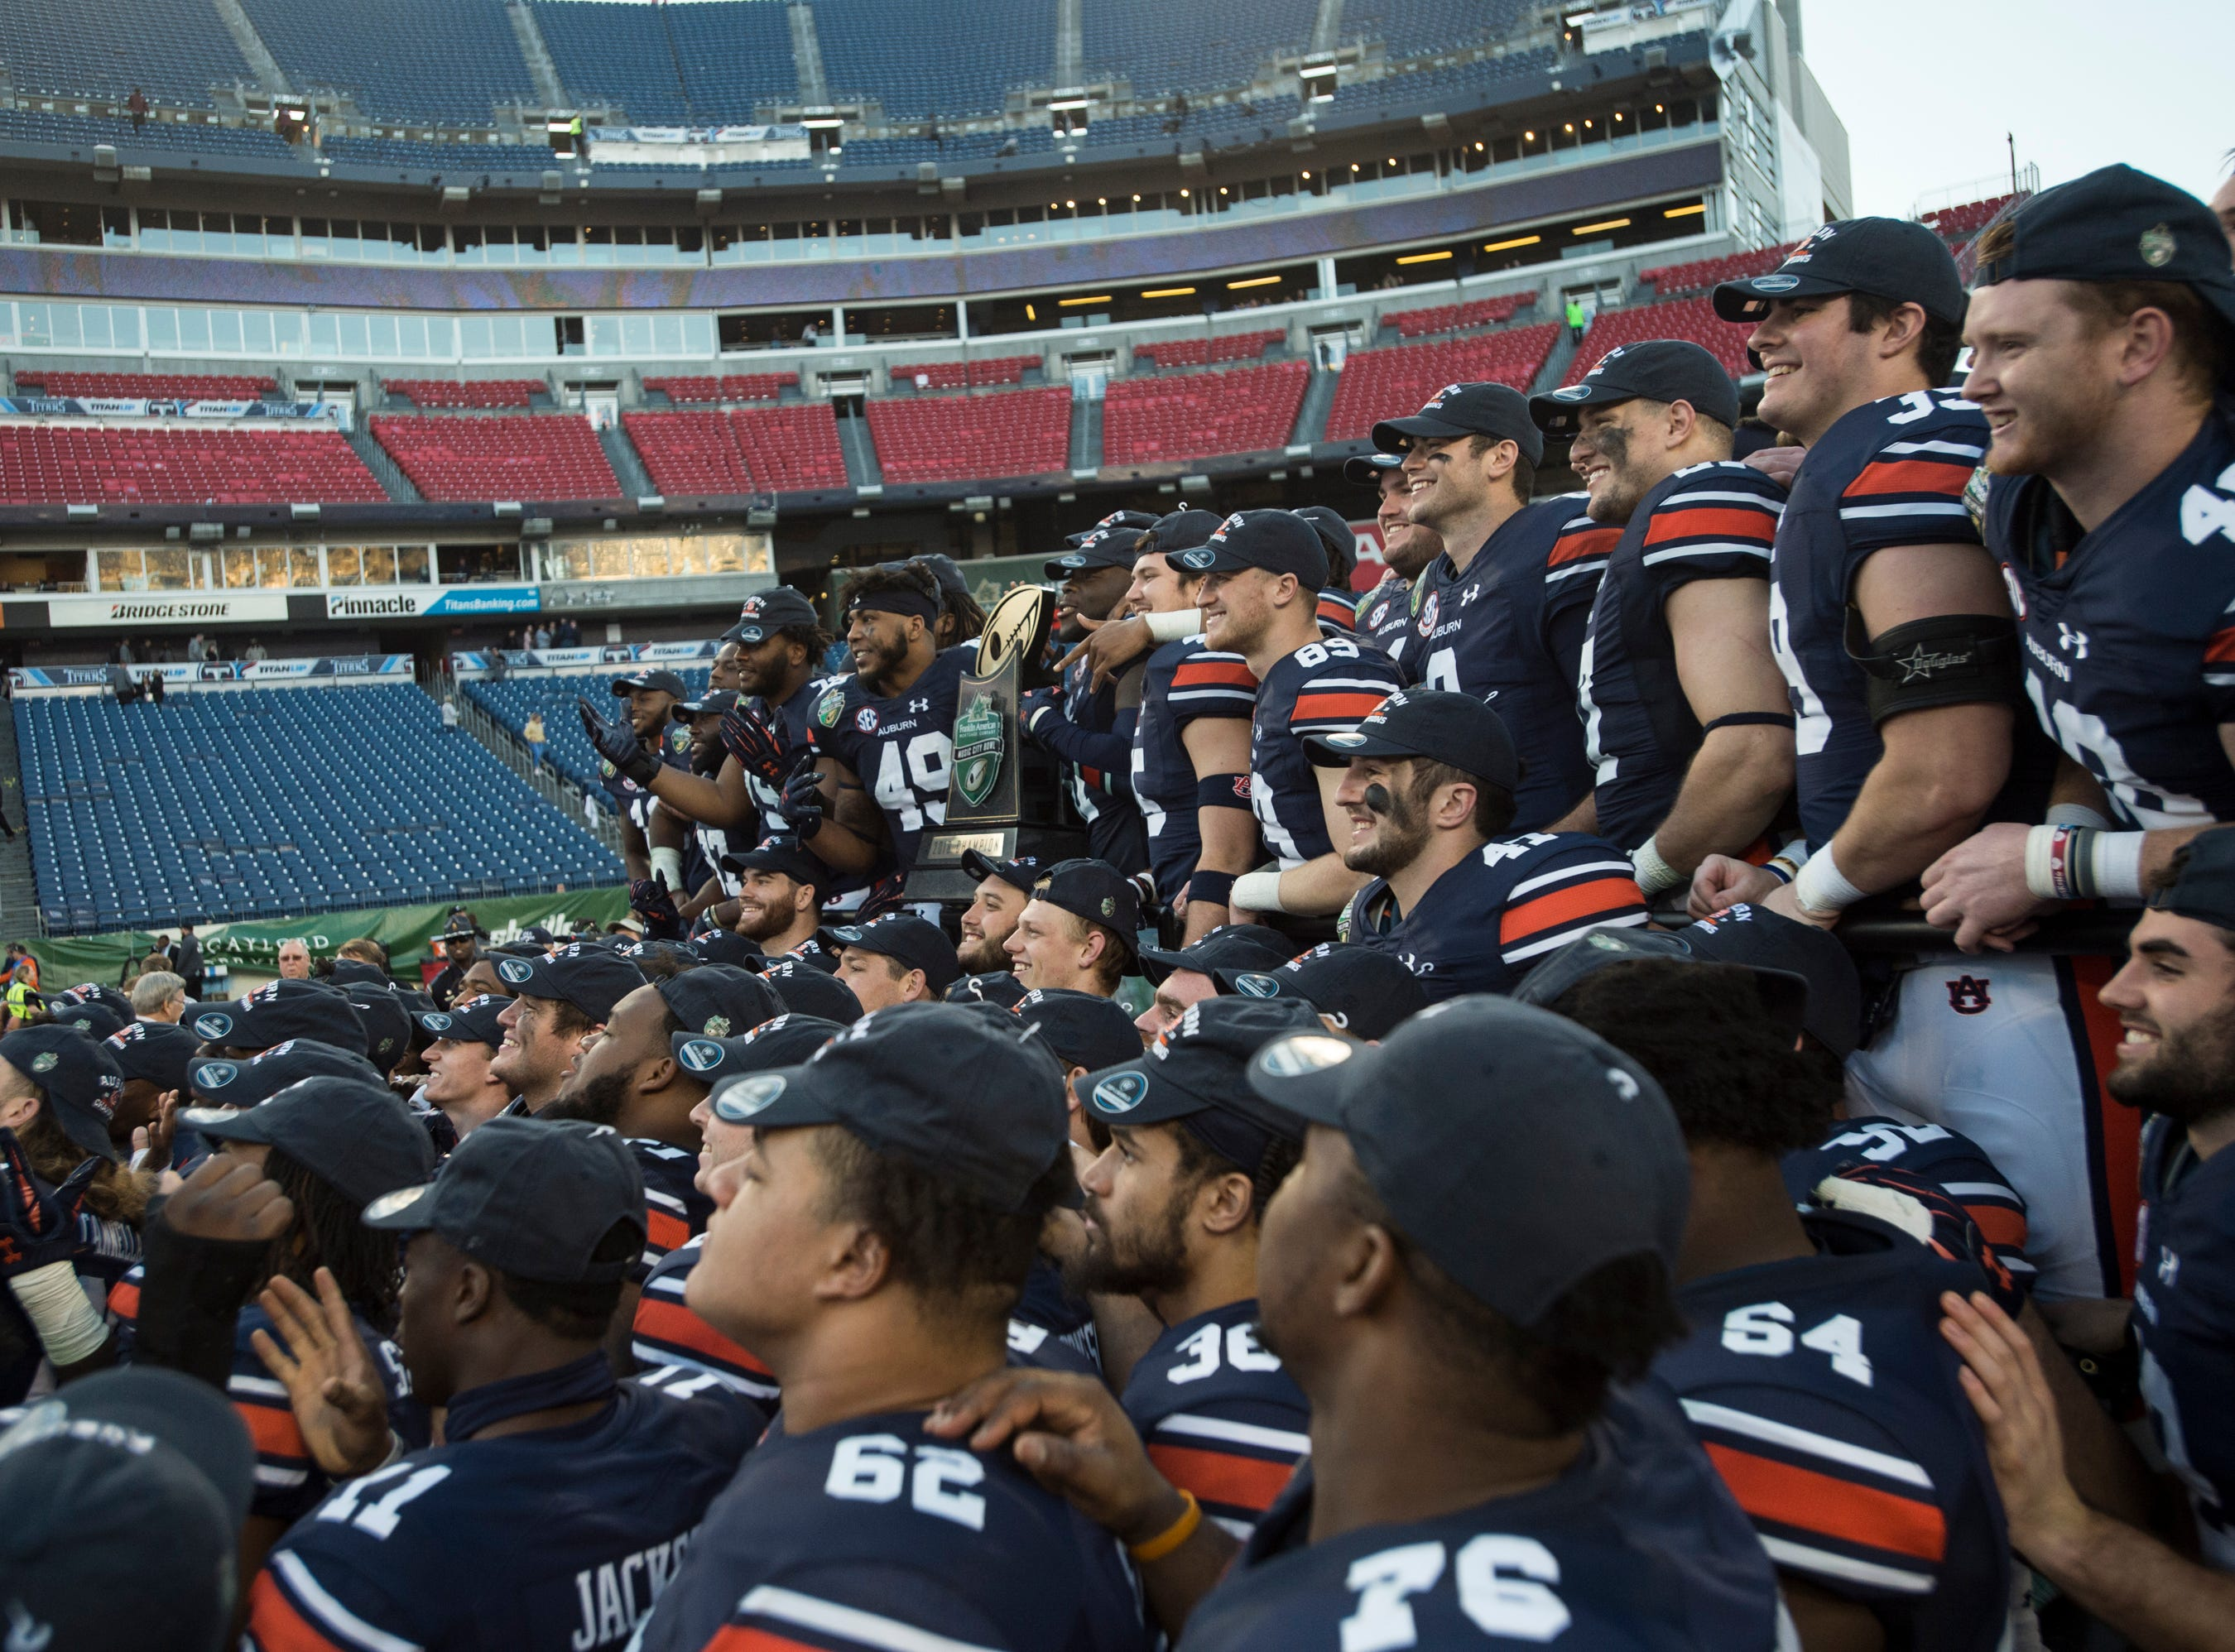 Auburn players pose for a picture at the end of the game during the Music City Bowl at Nissan Stadium in Nashville, Tenn., on Friday, Dec. 28, 2018. Auburn defeated Purdue 63-14.